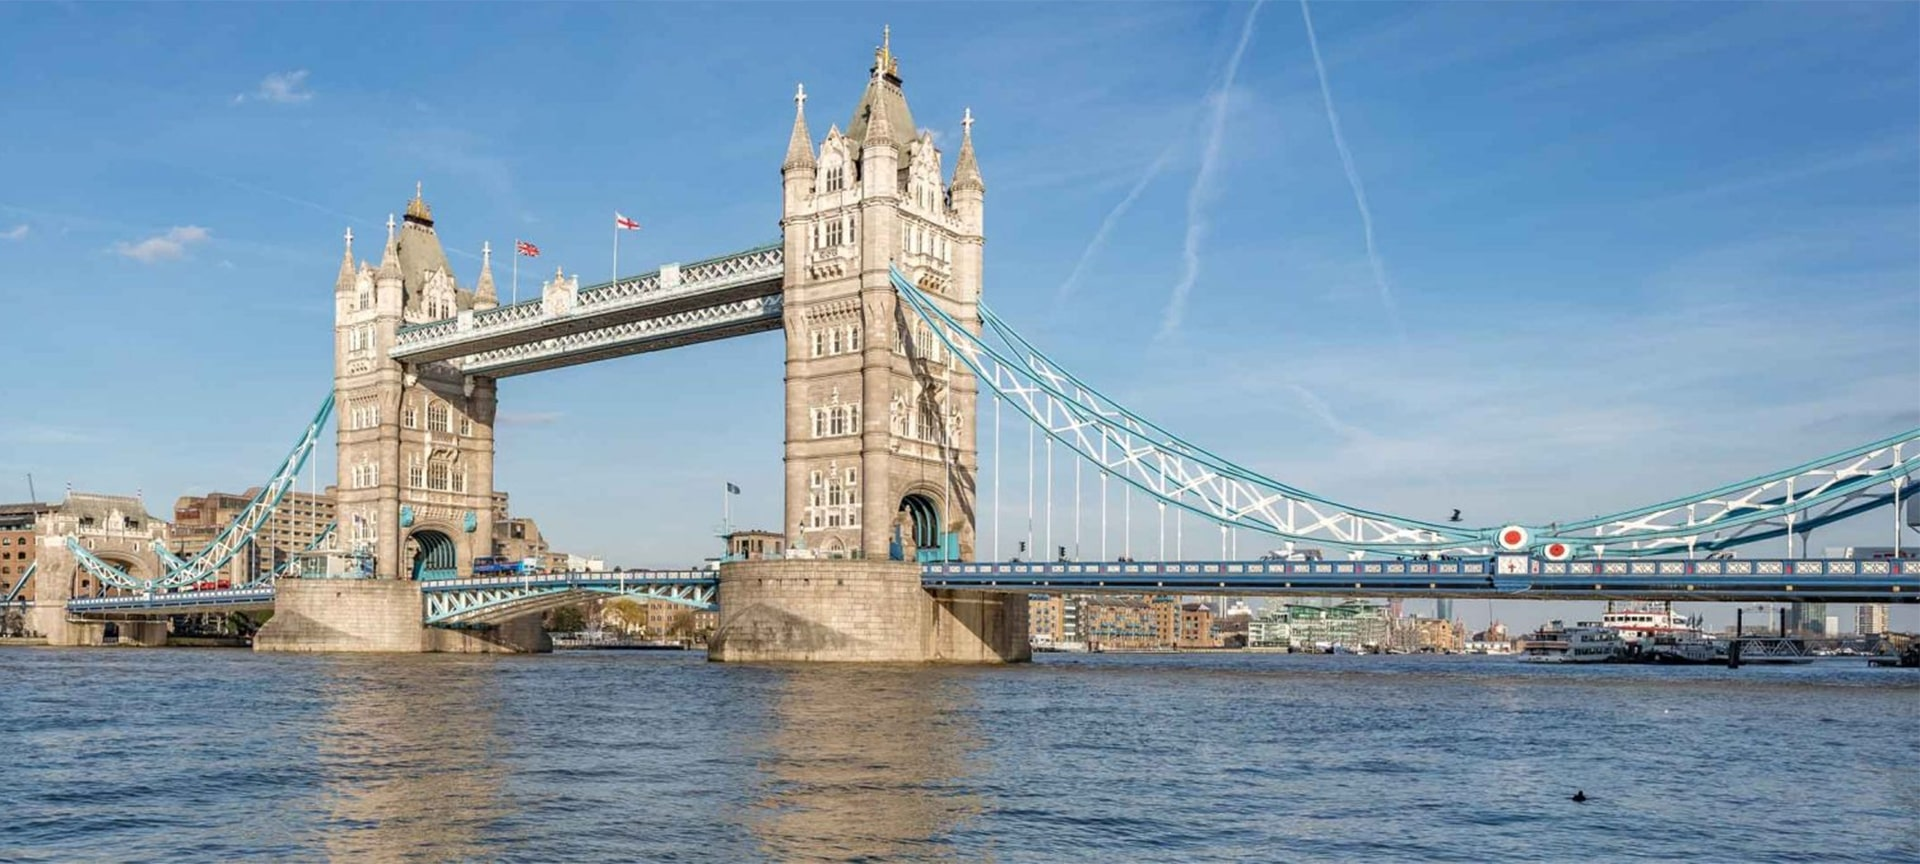 Tower Bridge has stood over the River Thames in London since 1894 and is one of the finest, most recognisable bridges in the world. A visit to London just isn't complete until you see Tower Bridge open for a passing ship.